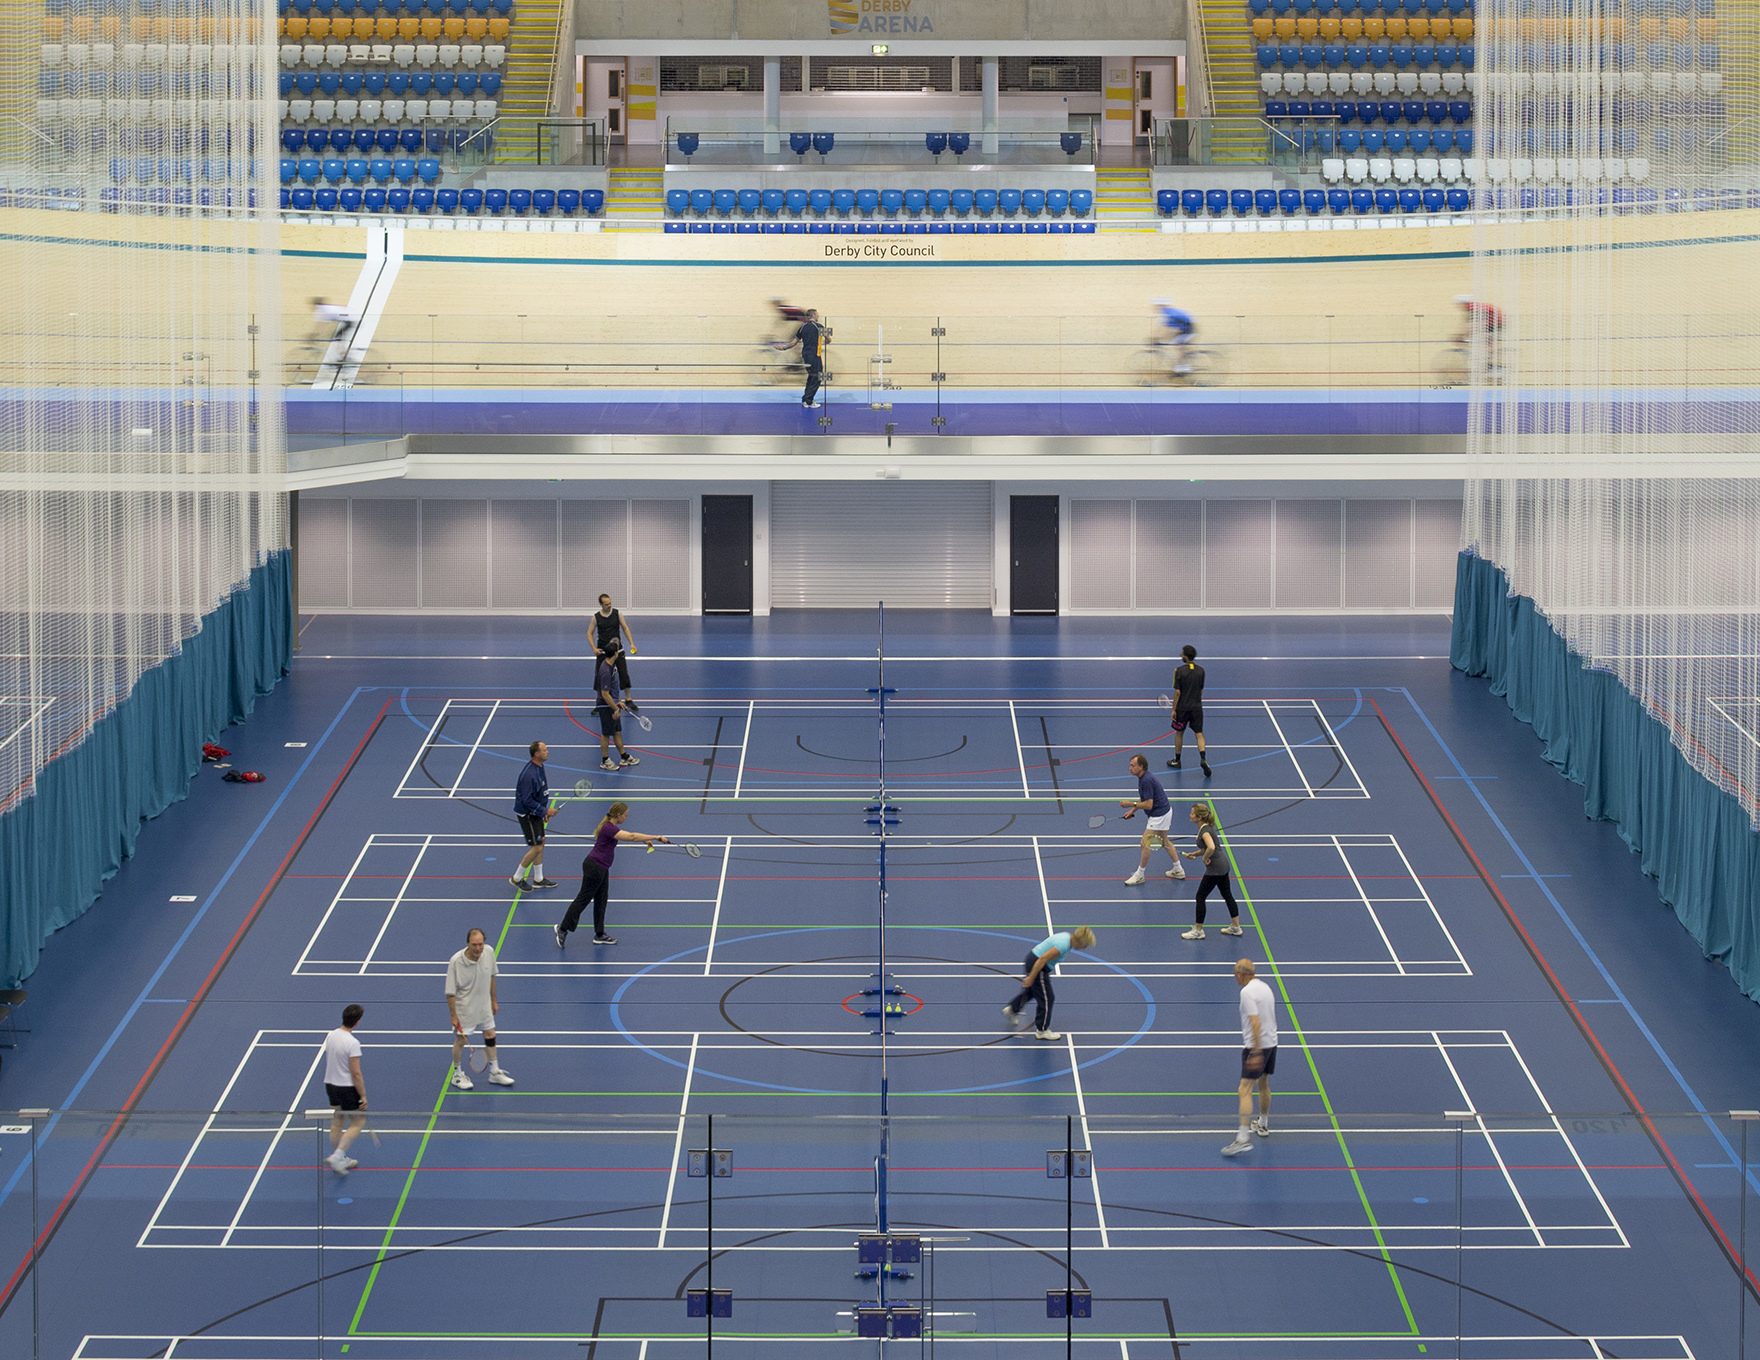 Community Leisure Expertise Derby Arena Badminton Infield Use L